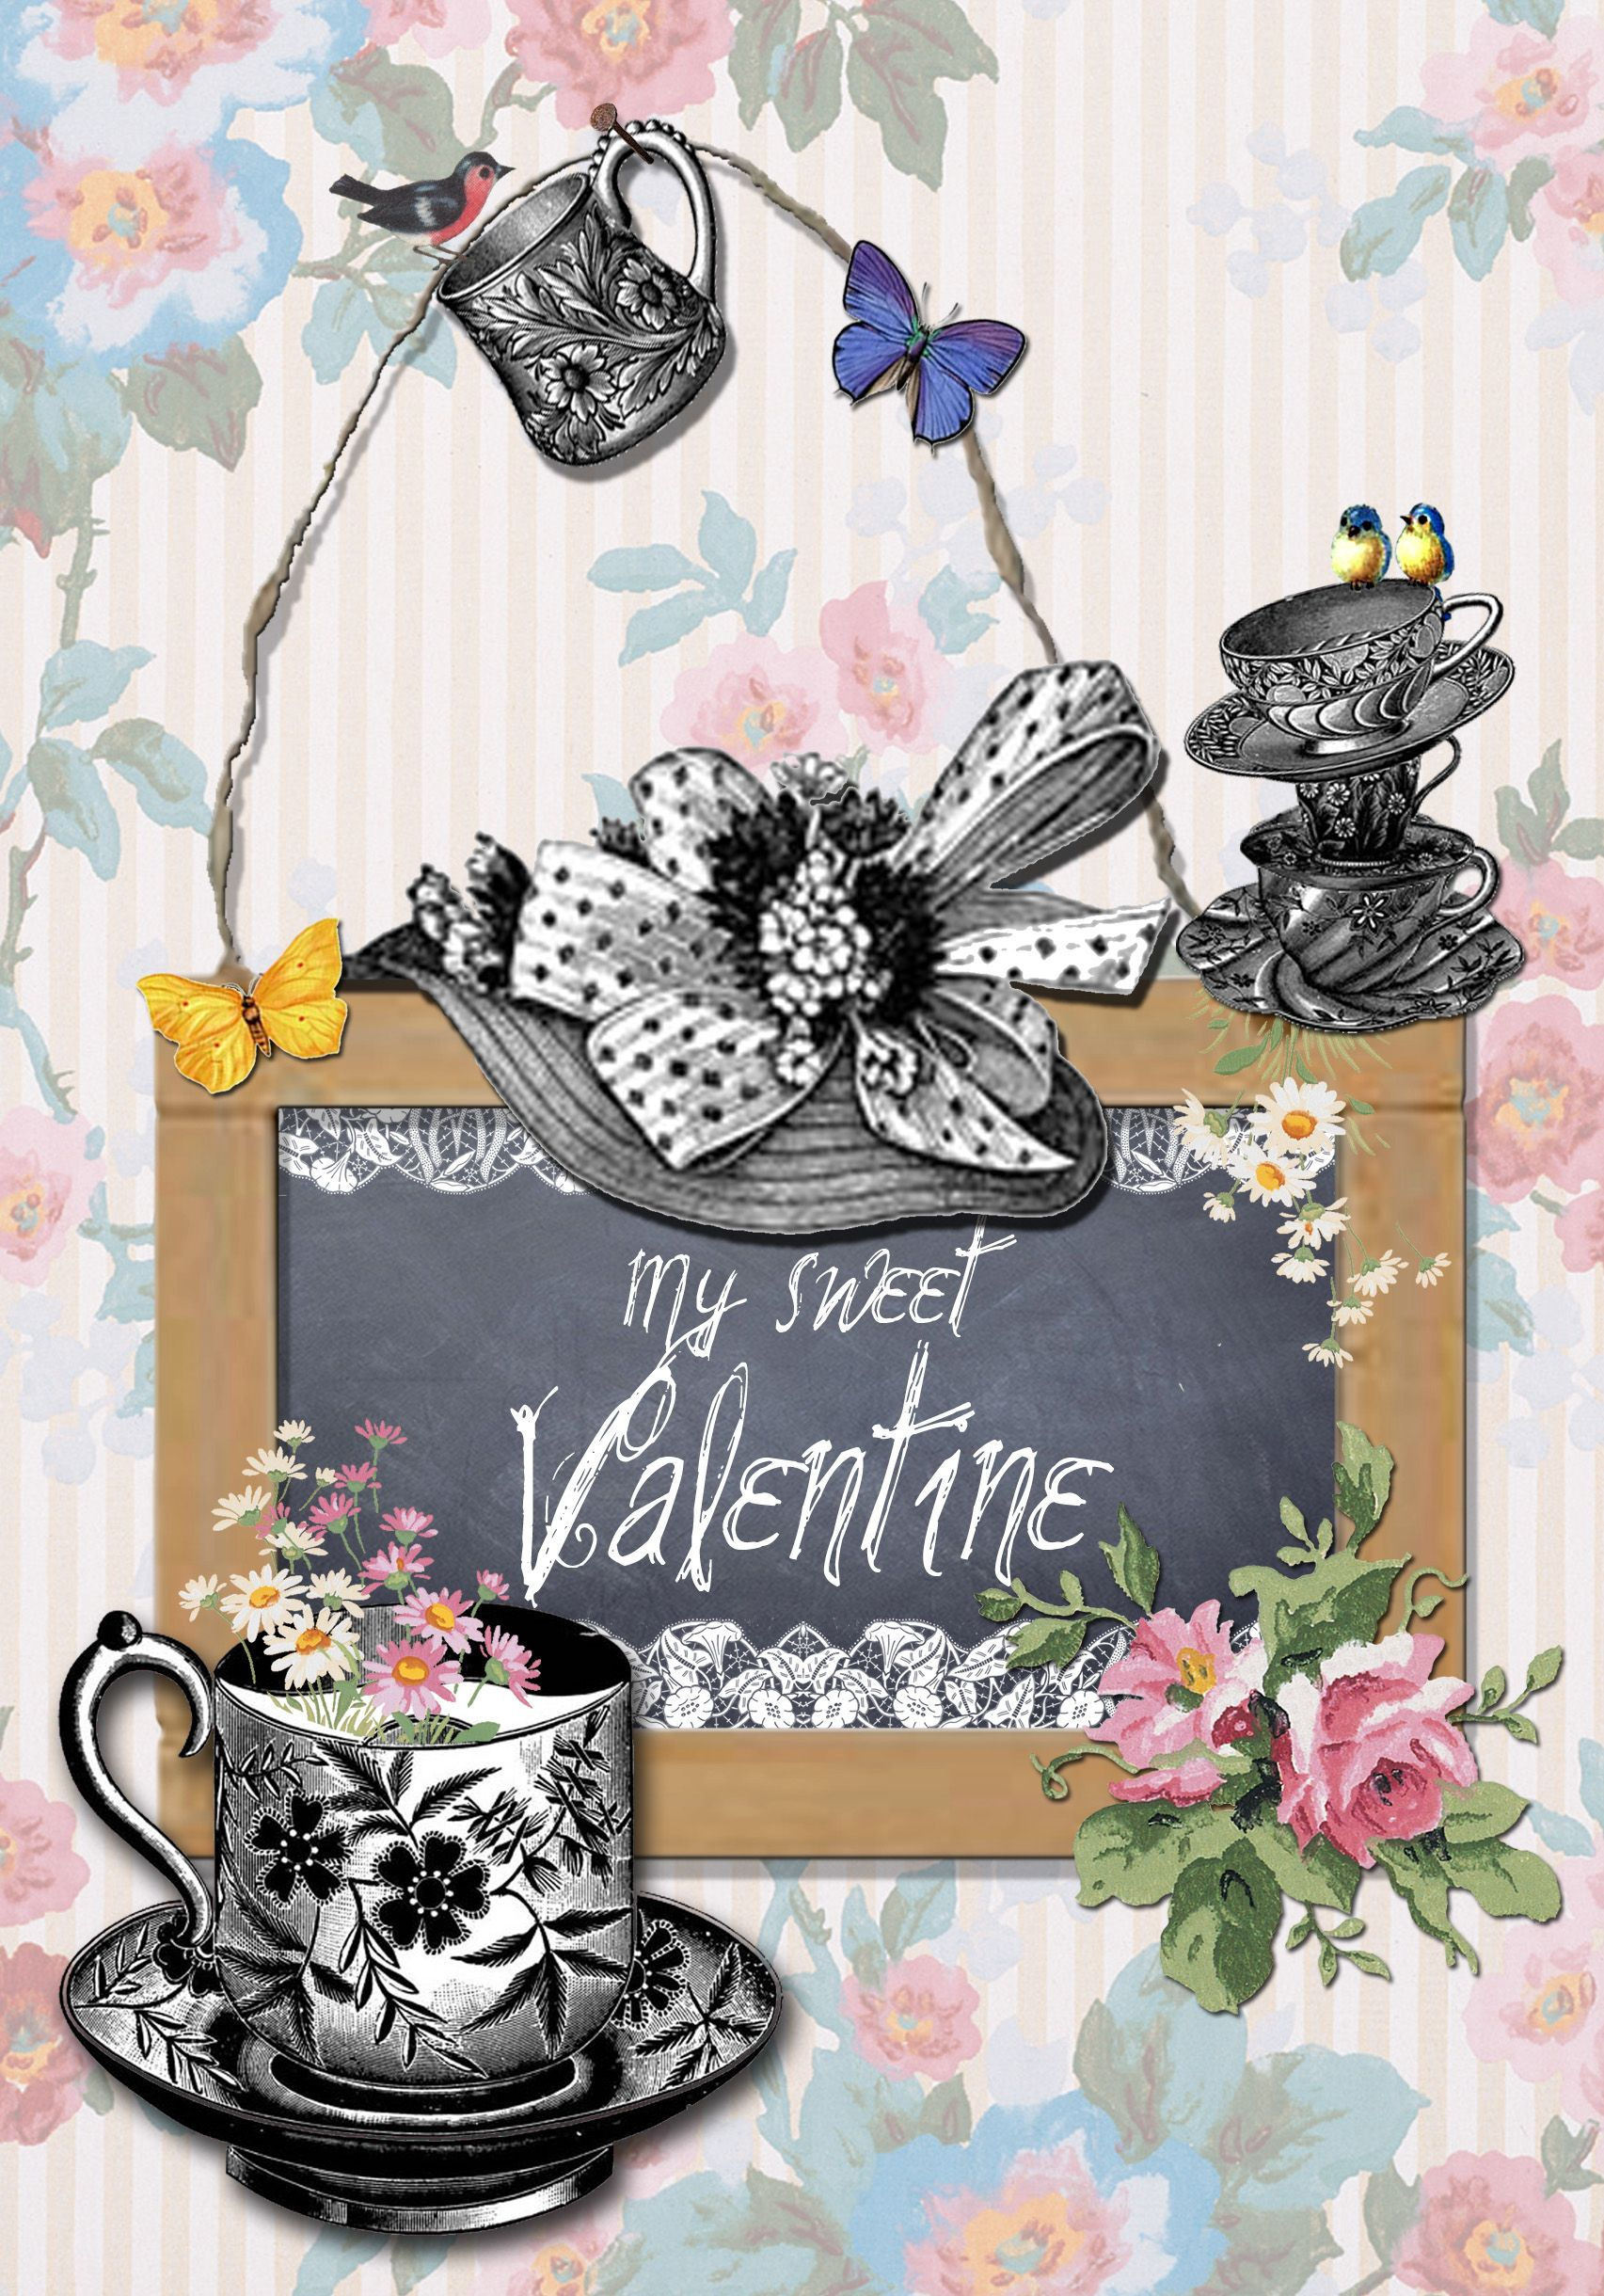 Greeting Mill Greeting cards by MOK STUDIO. Collection 'WALLPAPER', My sweet Valentine, Valentine's Day, rectangle.